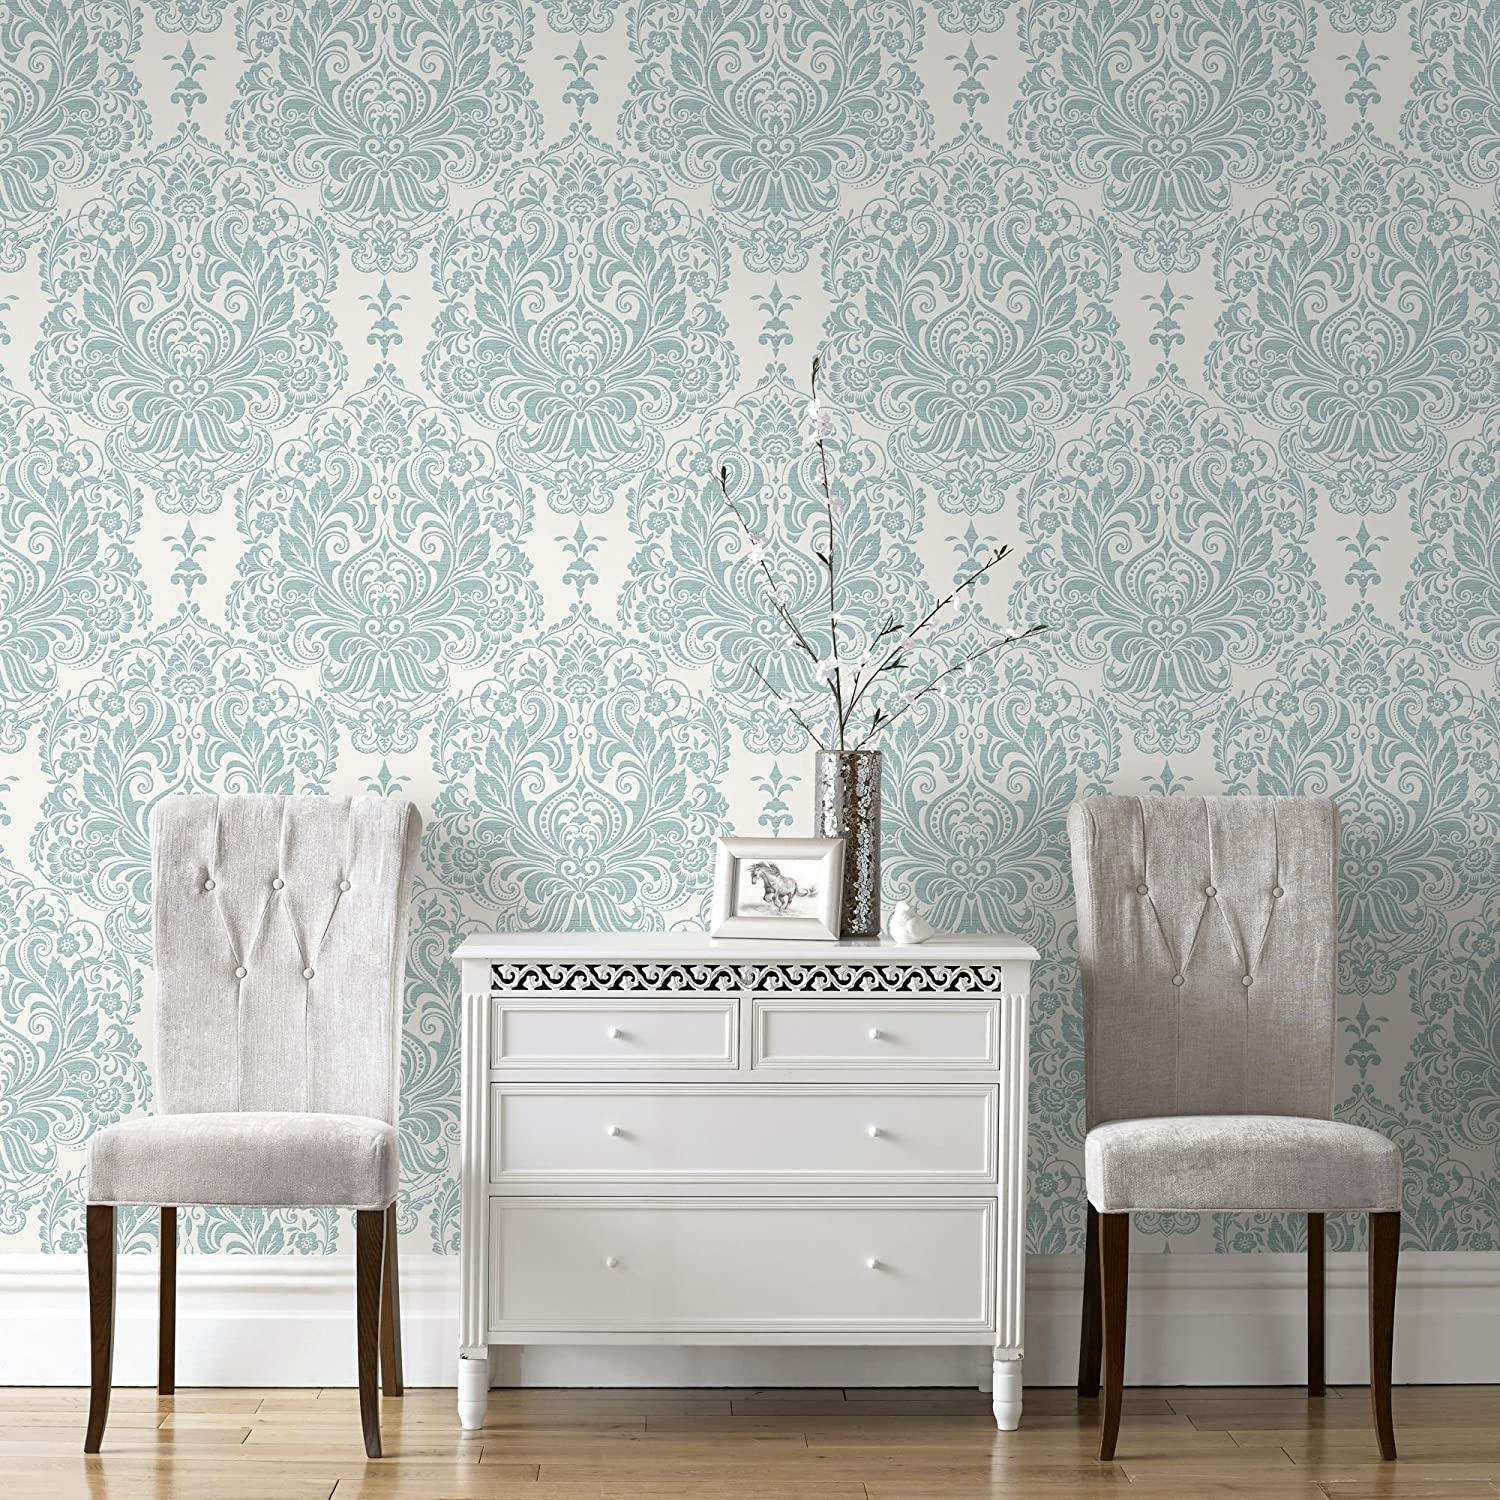 Must see Wallpaper Grey Duck Egg Blue - 91XhOBIL6CL  Pictures_448493.jpg